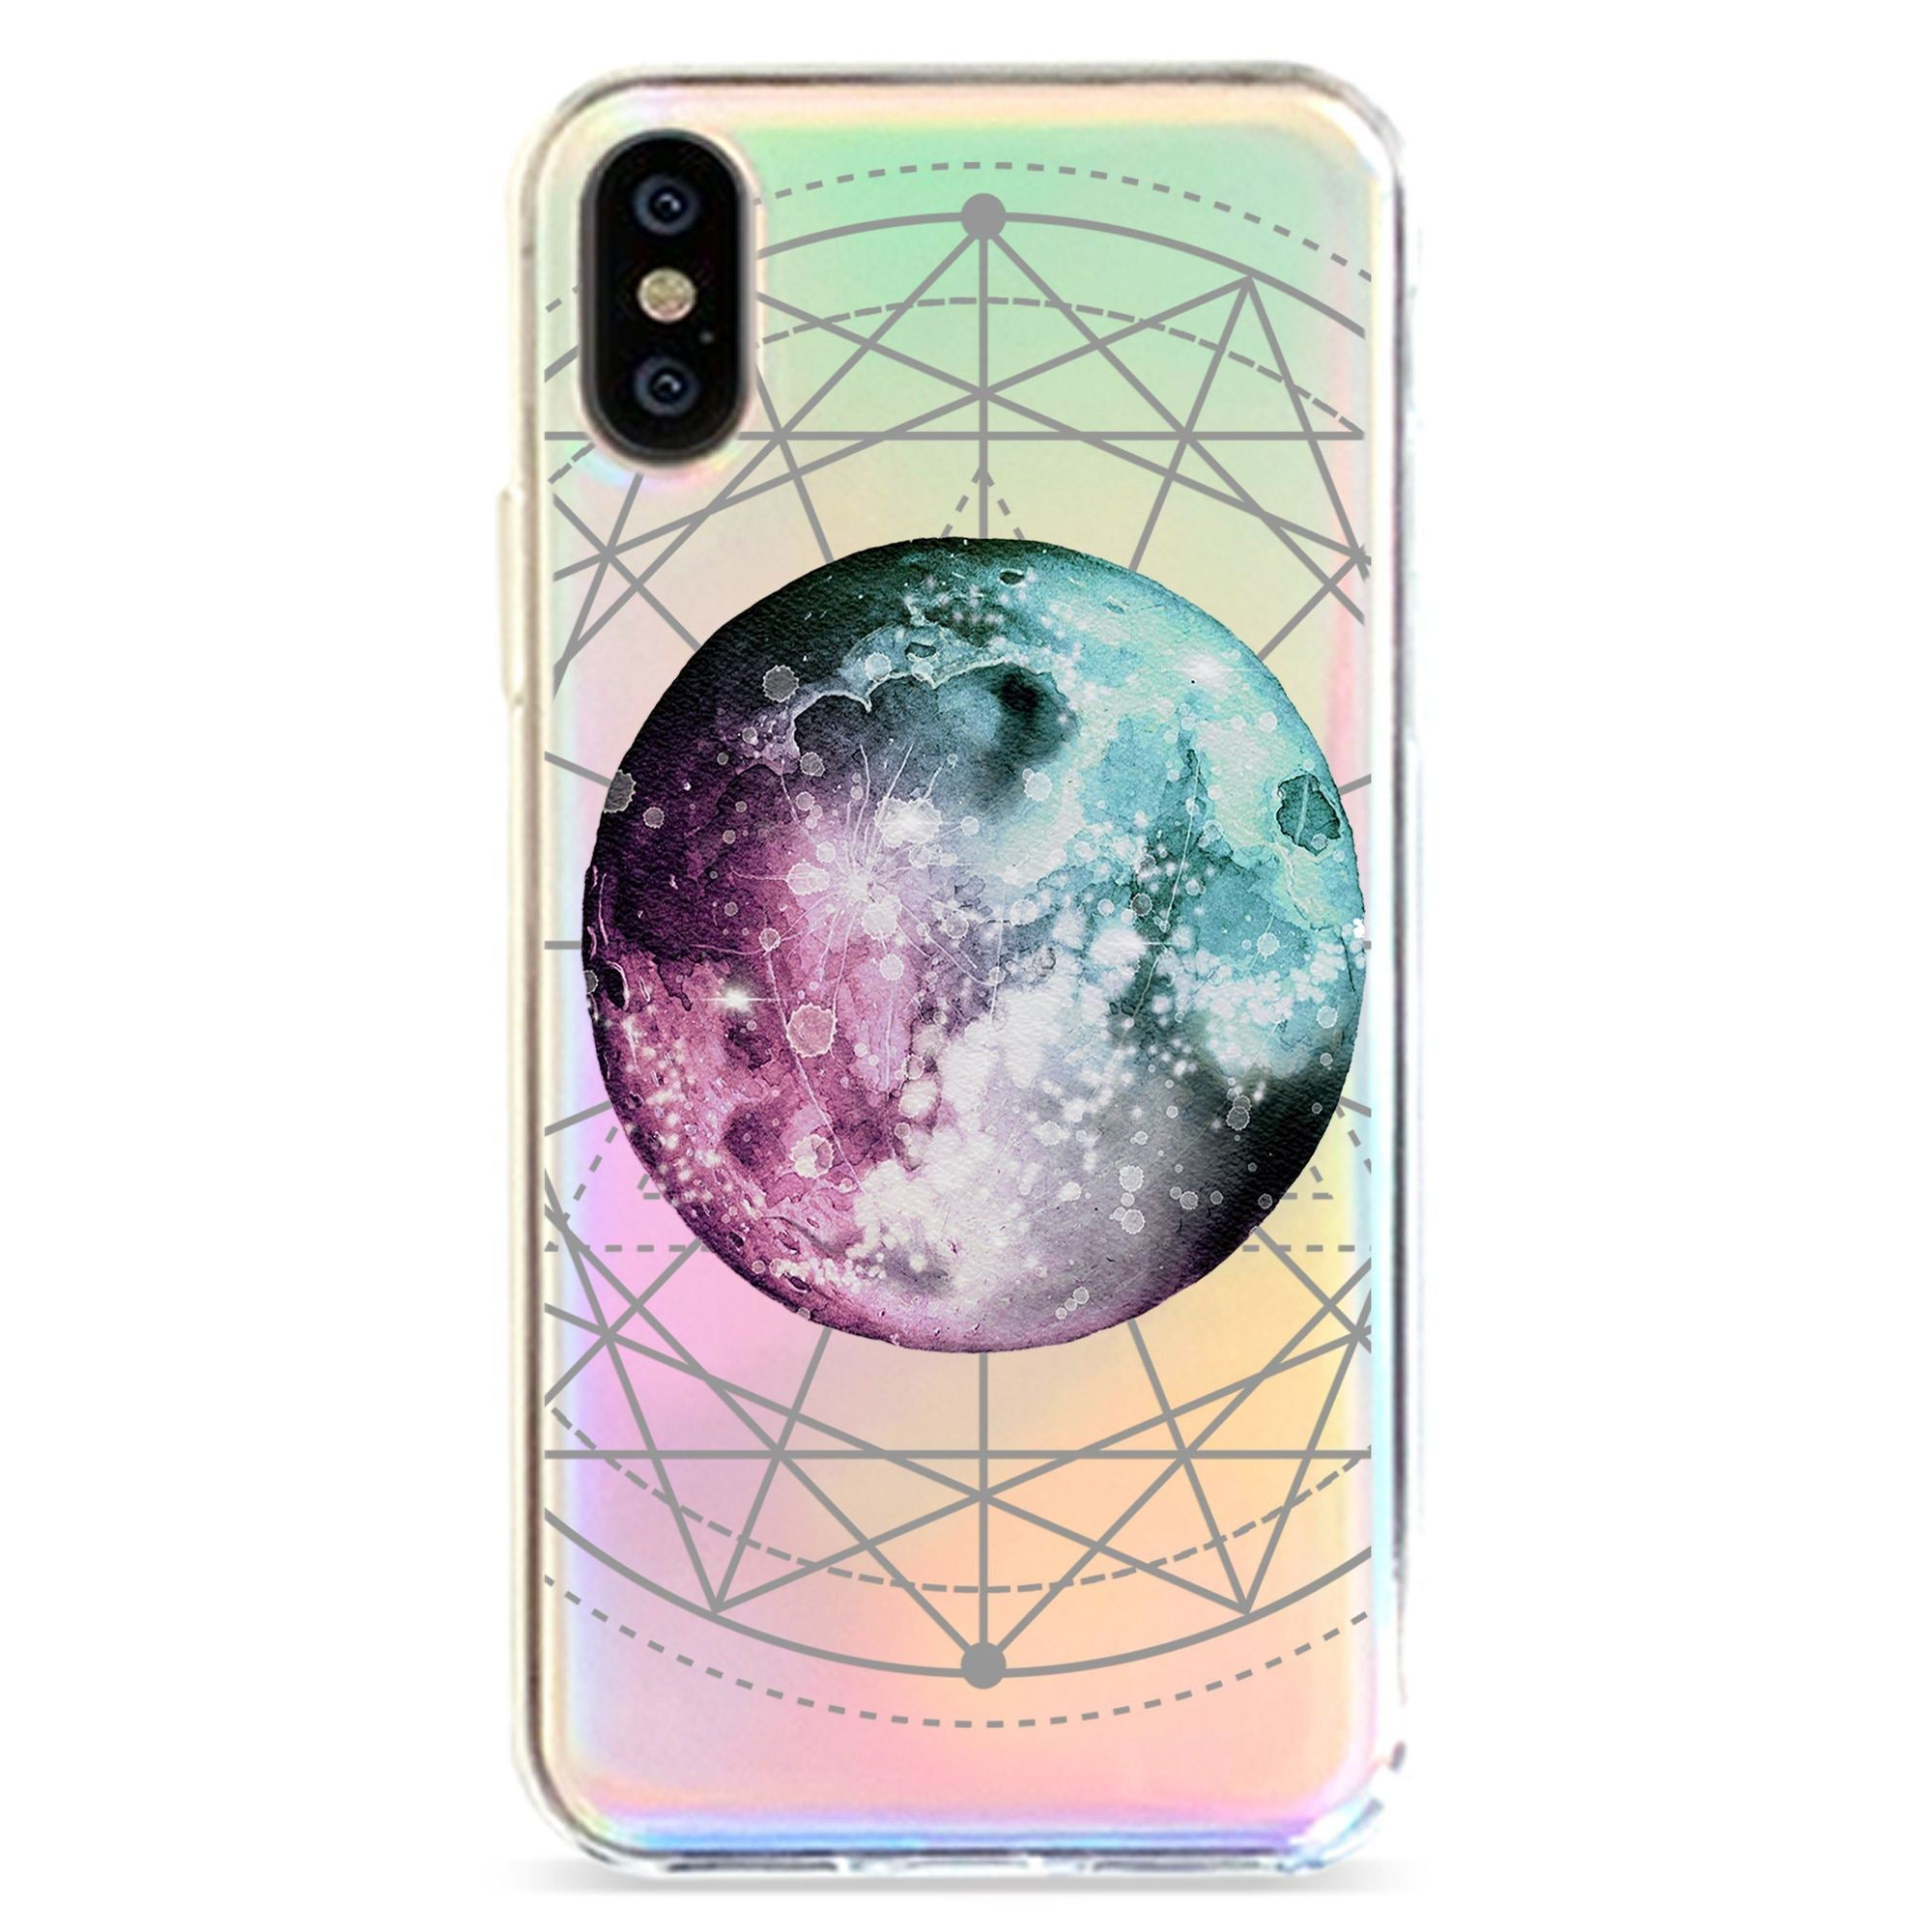 BLUE PURPLE MOON - HOLOGRAPHIC IPHONE CASE